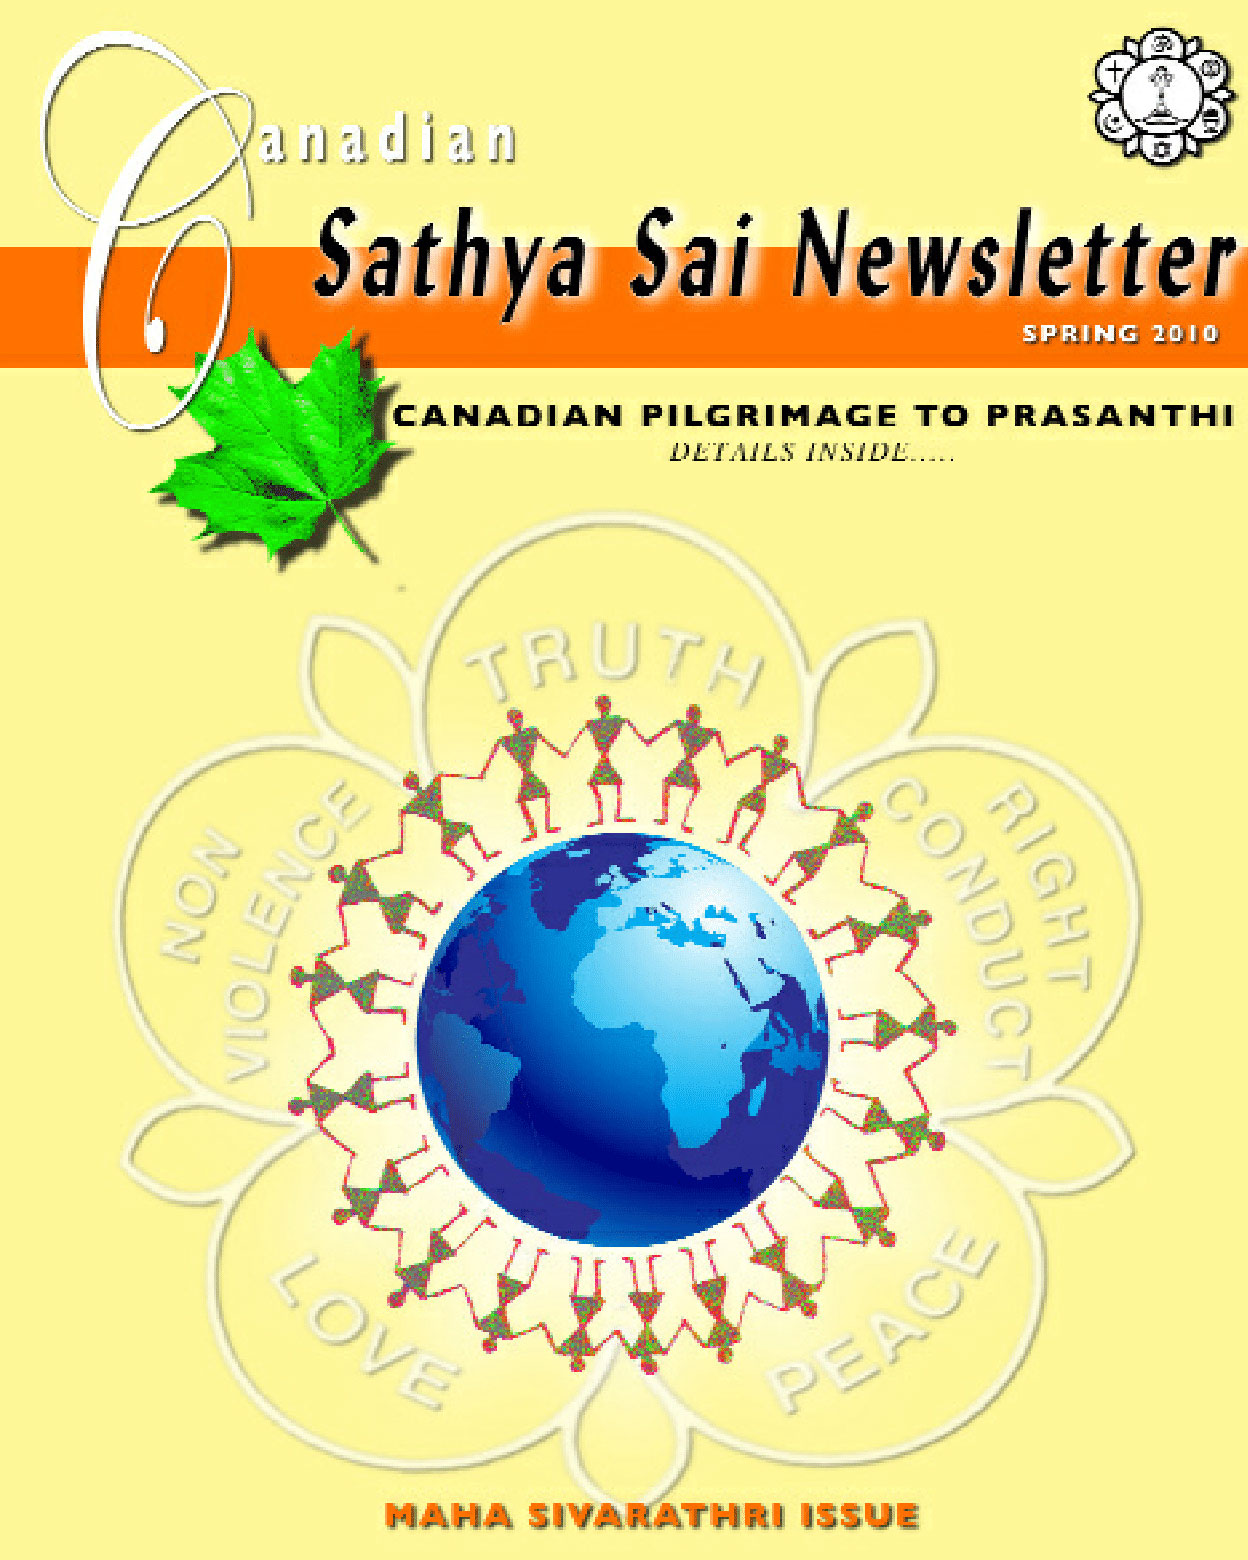 The Canadian Sathya Sai Magazine - Spring 2010